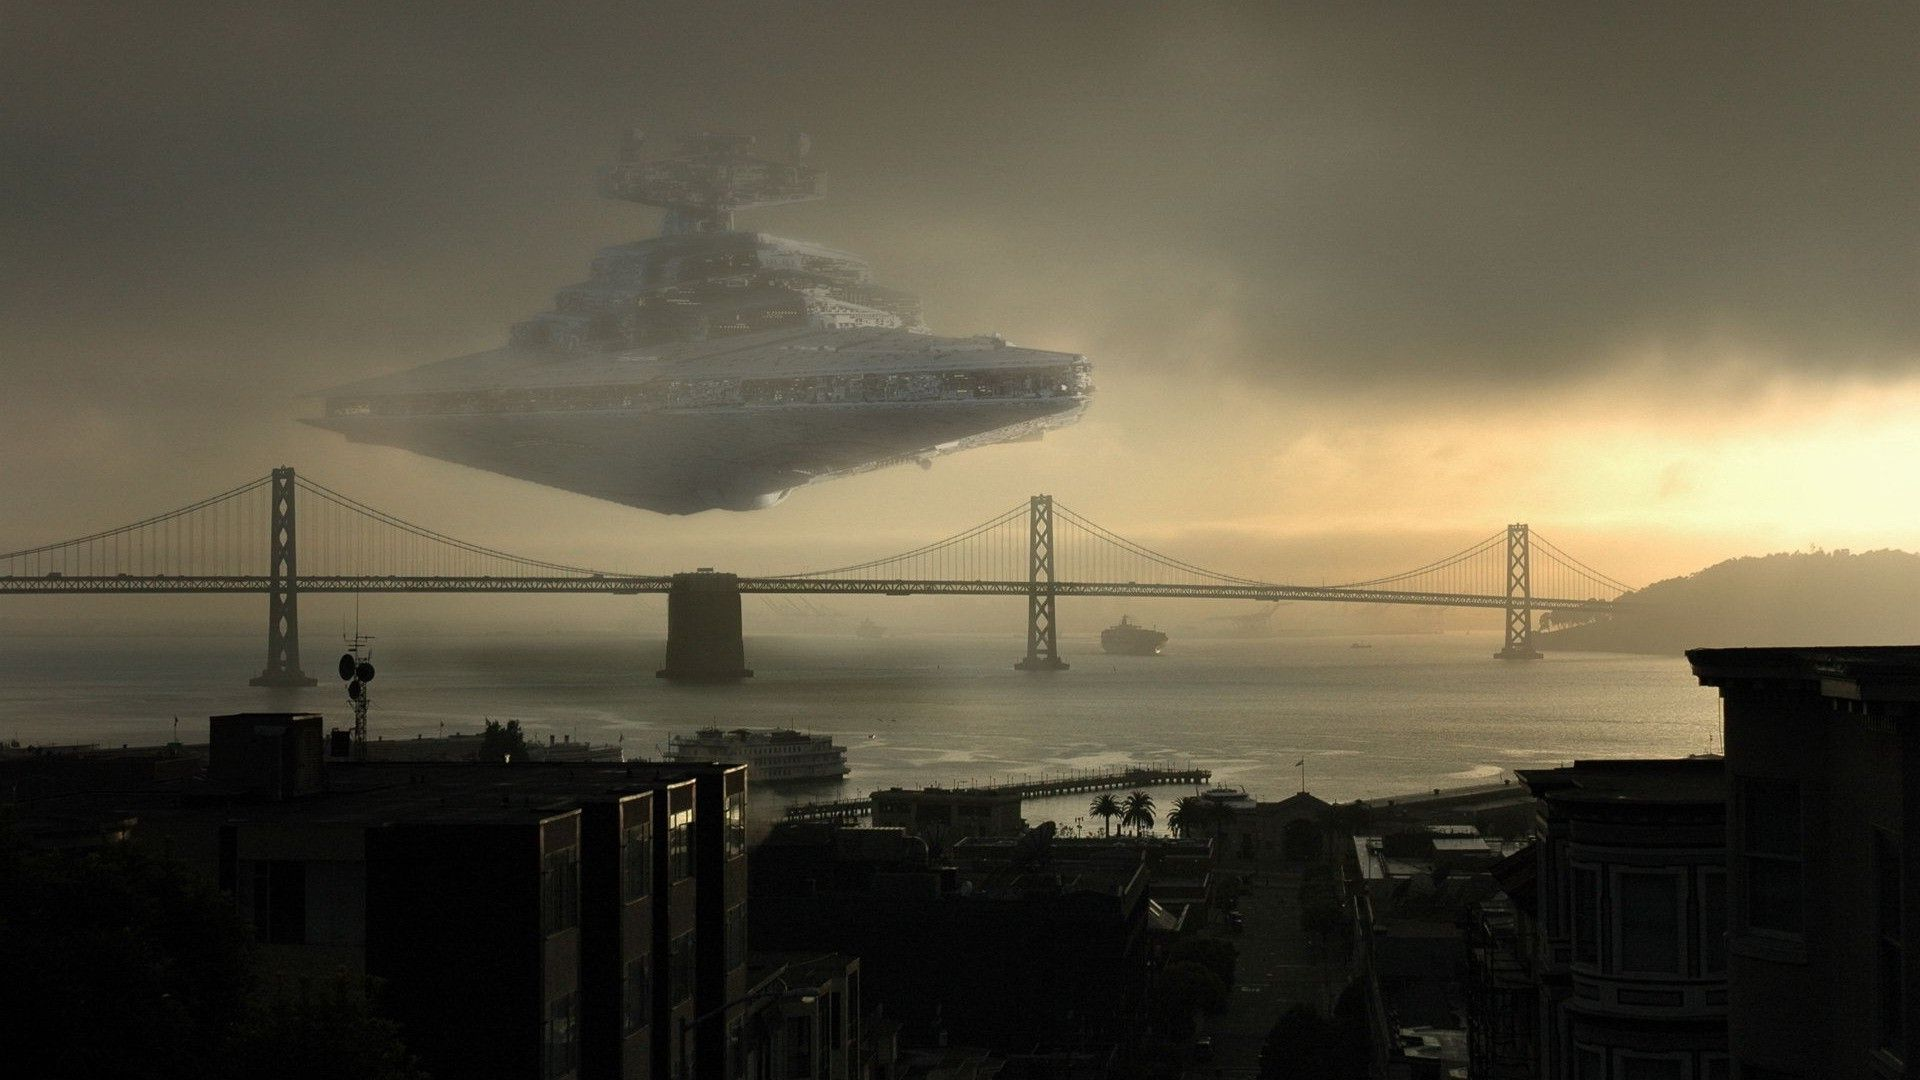 Spaceship Landscape Star Wars San Francisco Wallpapers Star Wars Wallpaper Landscape 1920x1080 Wallpaper Teahub Io